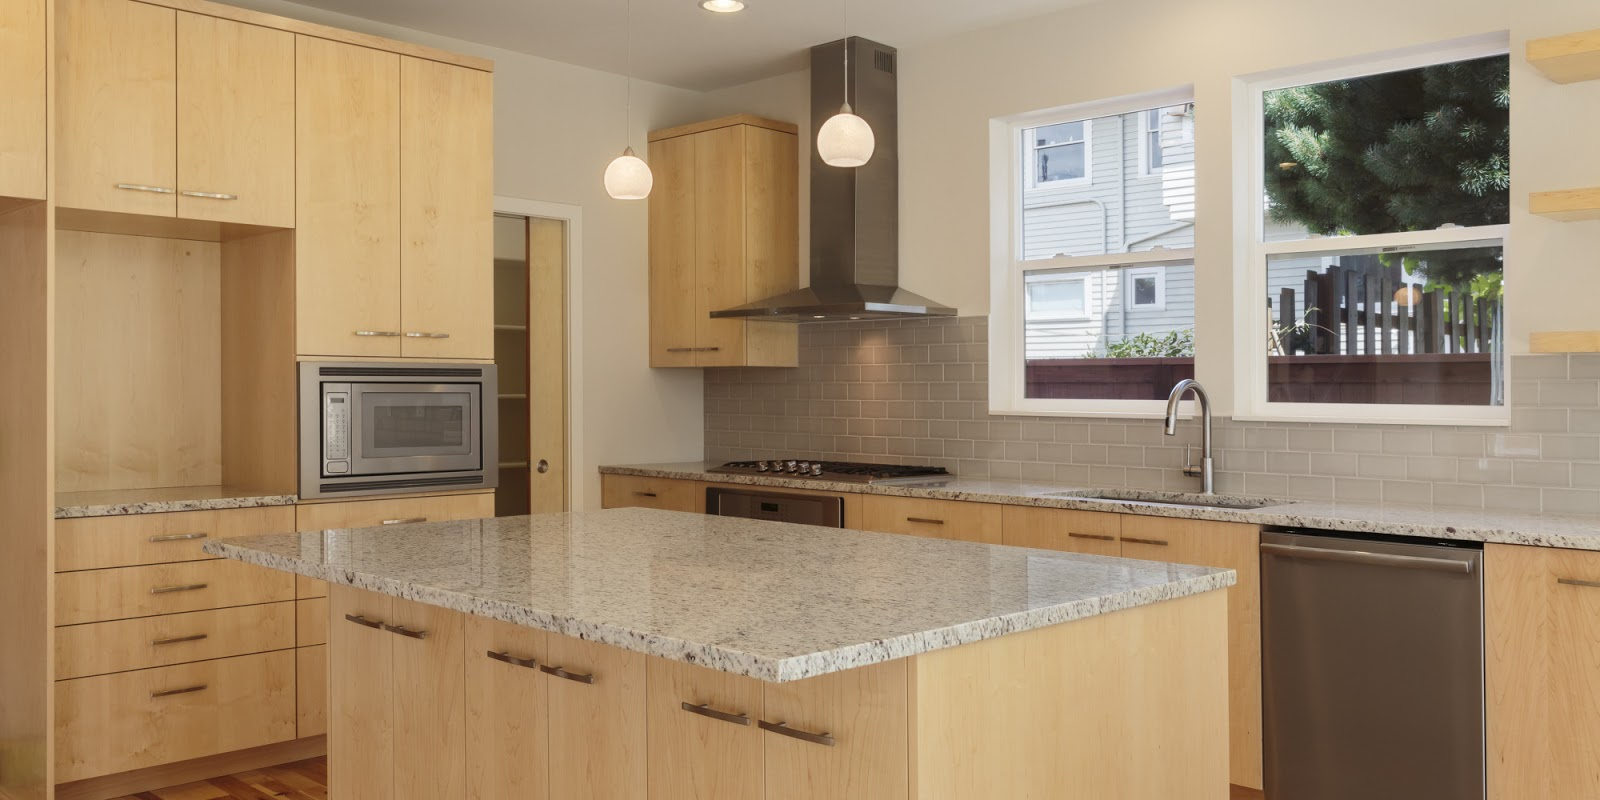 guide to common kitchen cabinet sizes